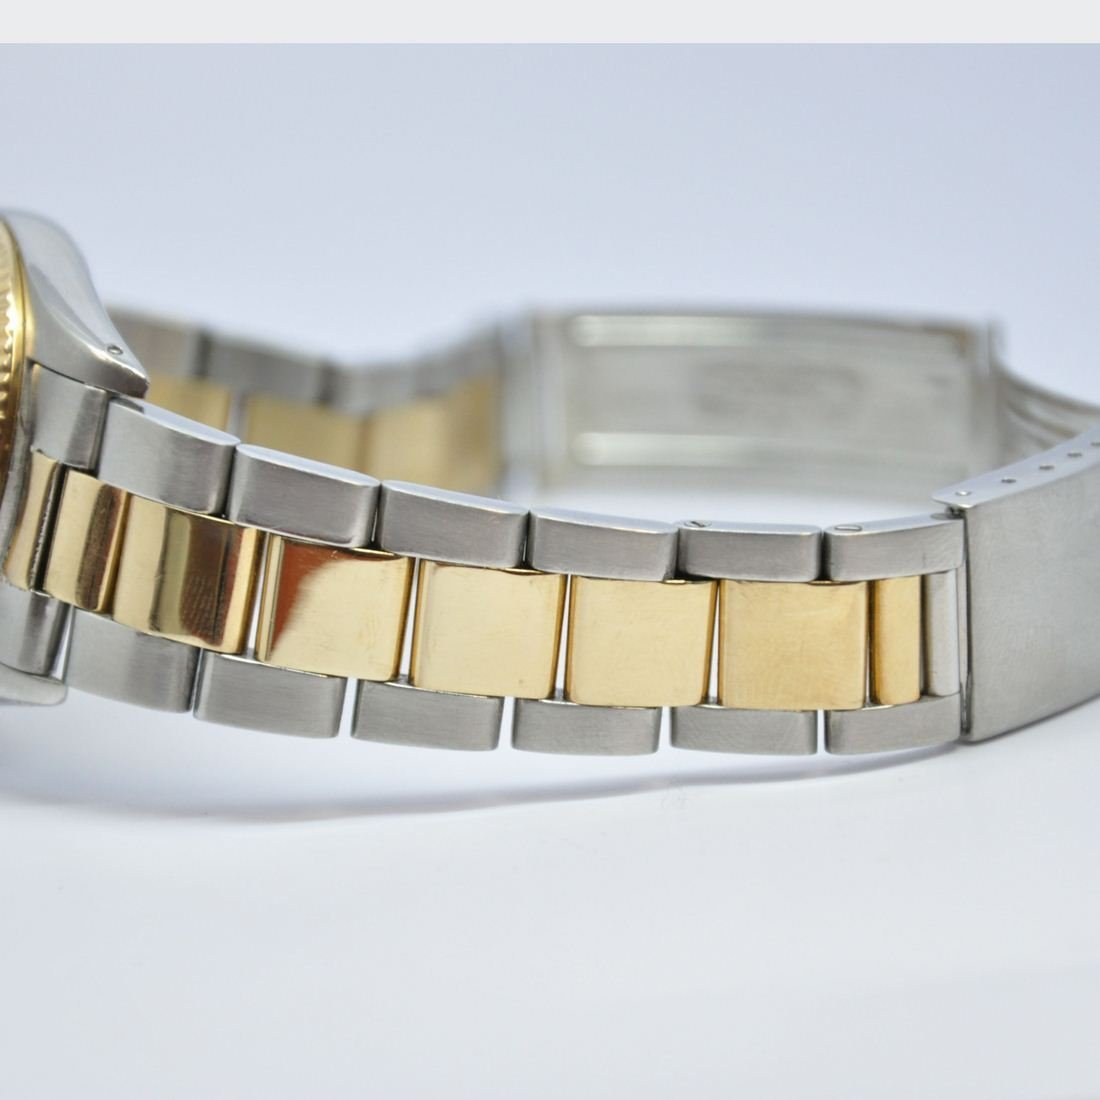 Rolex Oyster Perpetual DateJust Day-date 2 Two tone - 8